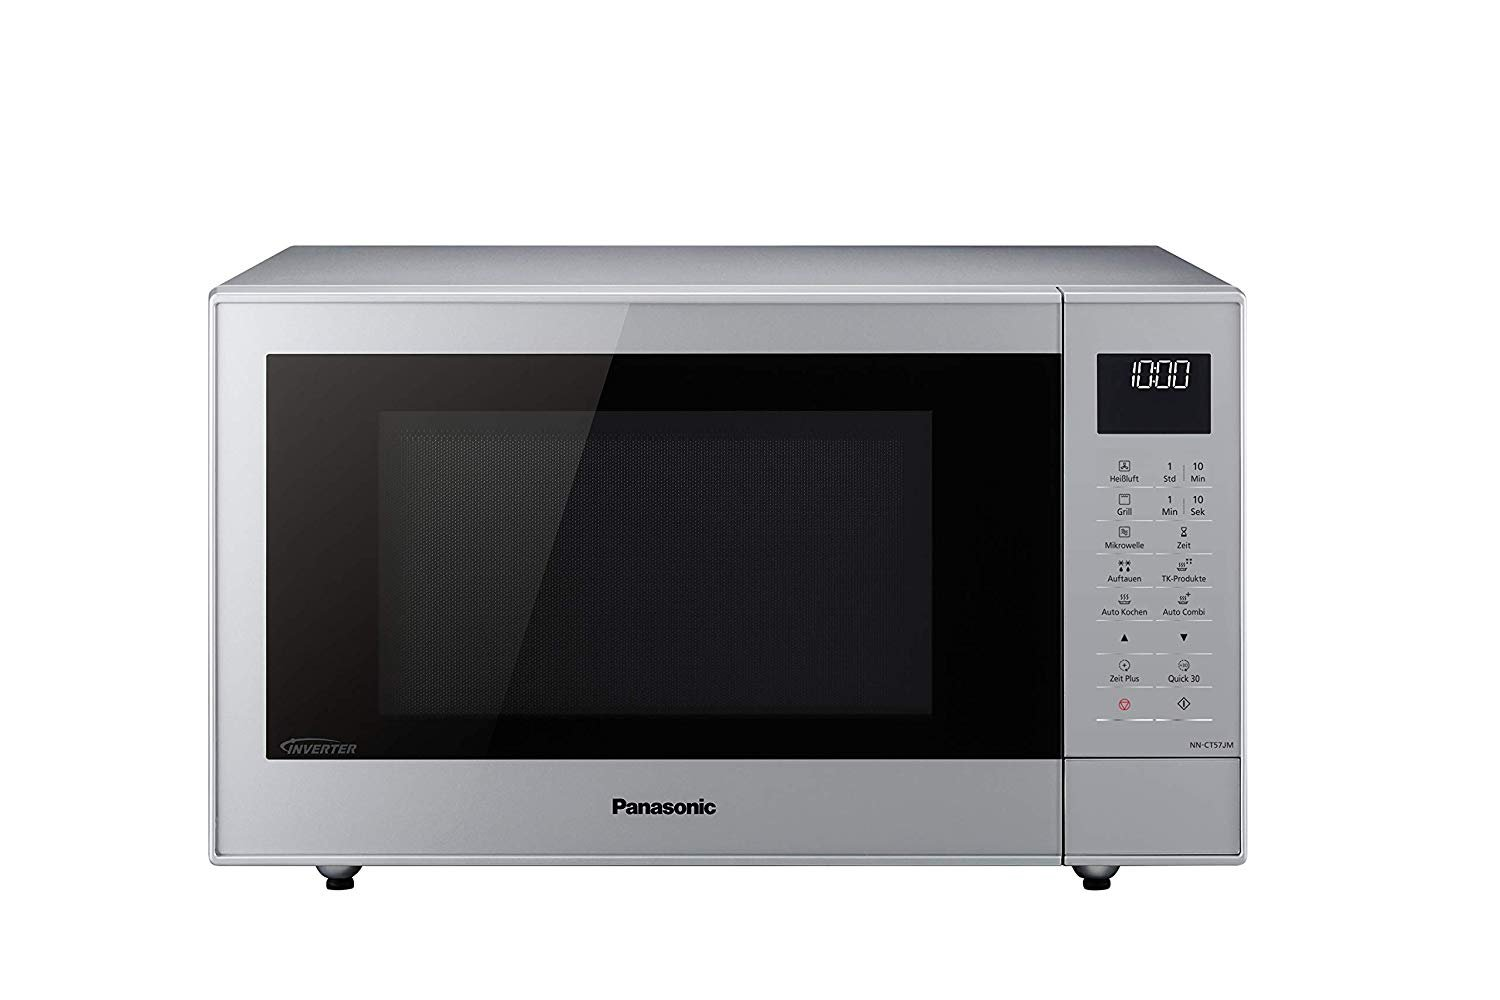 Panasonic NN-CT57 Test